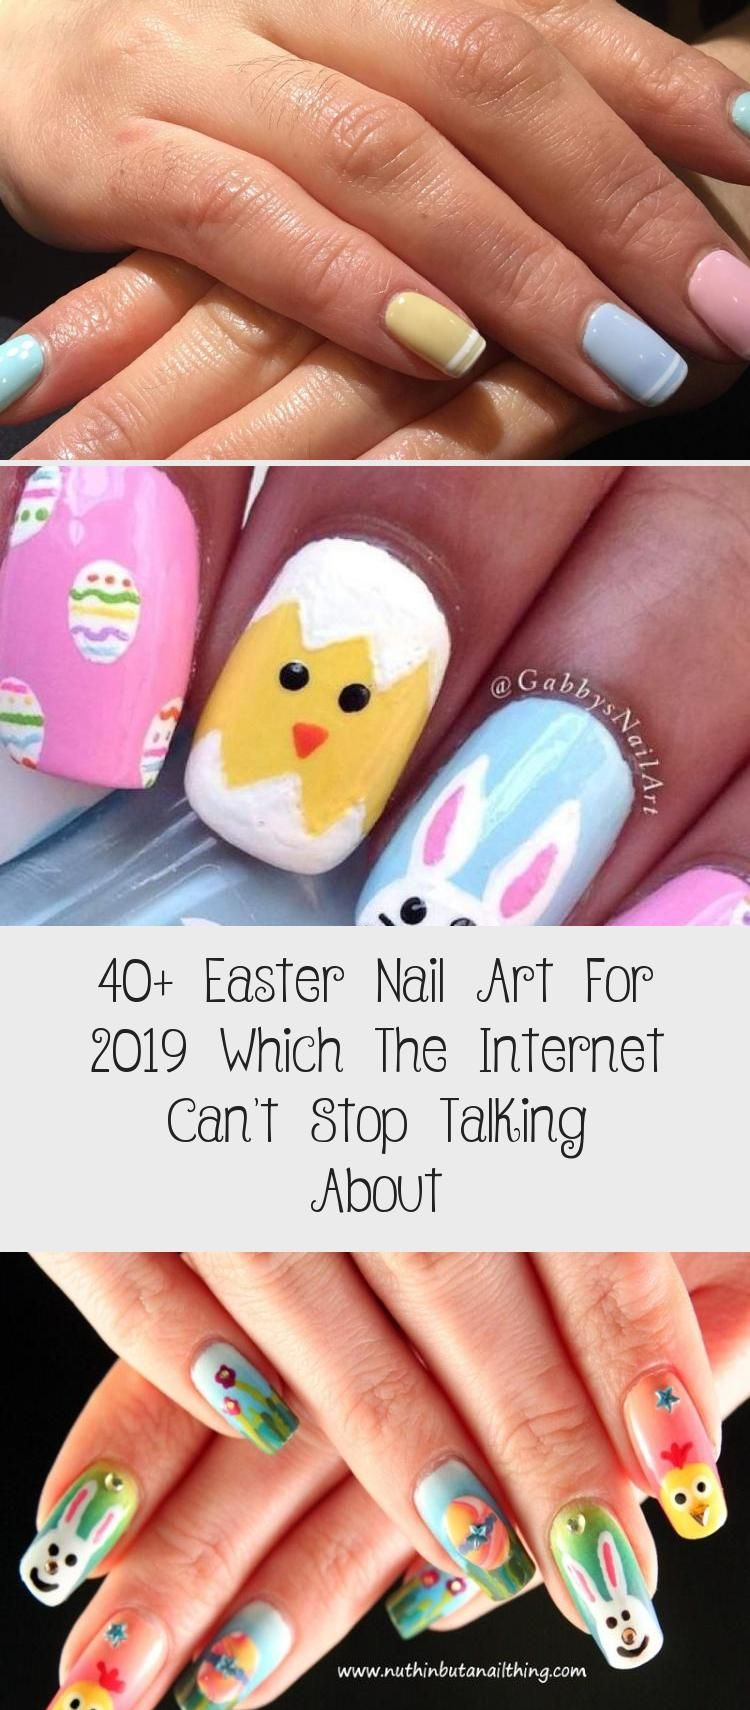 40+ Easter Nail Art For 2019 Which The Internet Can't Stop Talking About - Nail Art Desing